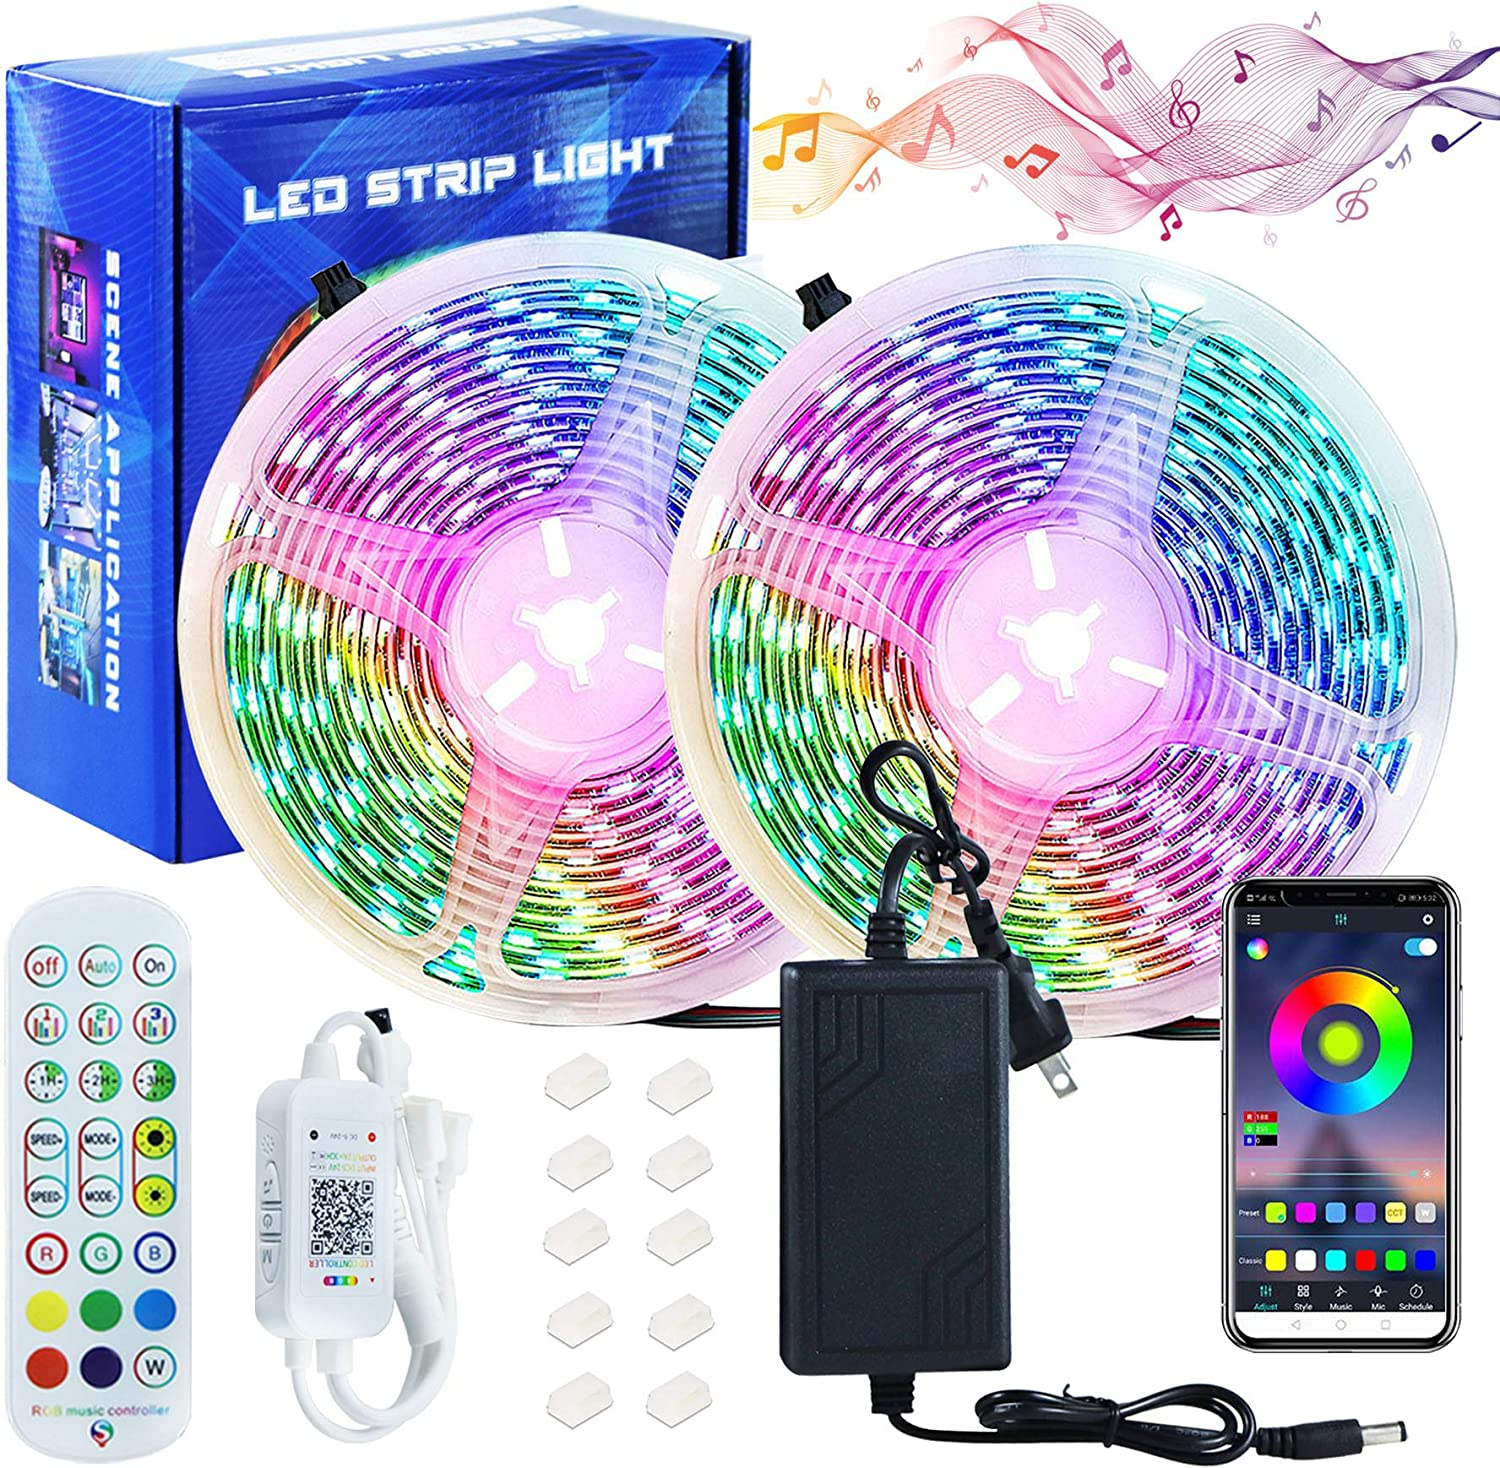 32.8ft free shipping RGB We OFFer at cheap prices Led Strip Lights Bluetooth Waterpro Outdoor Bedroom